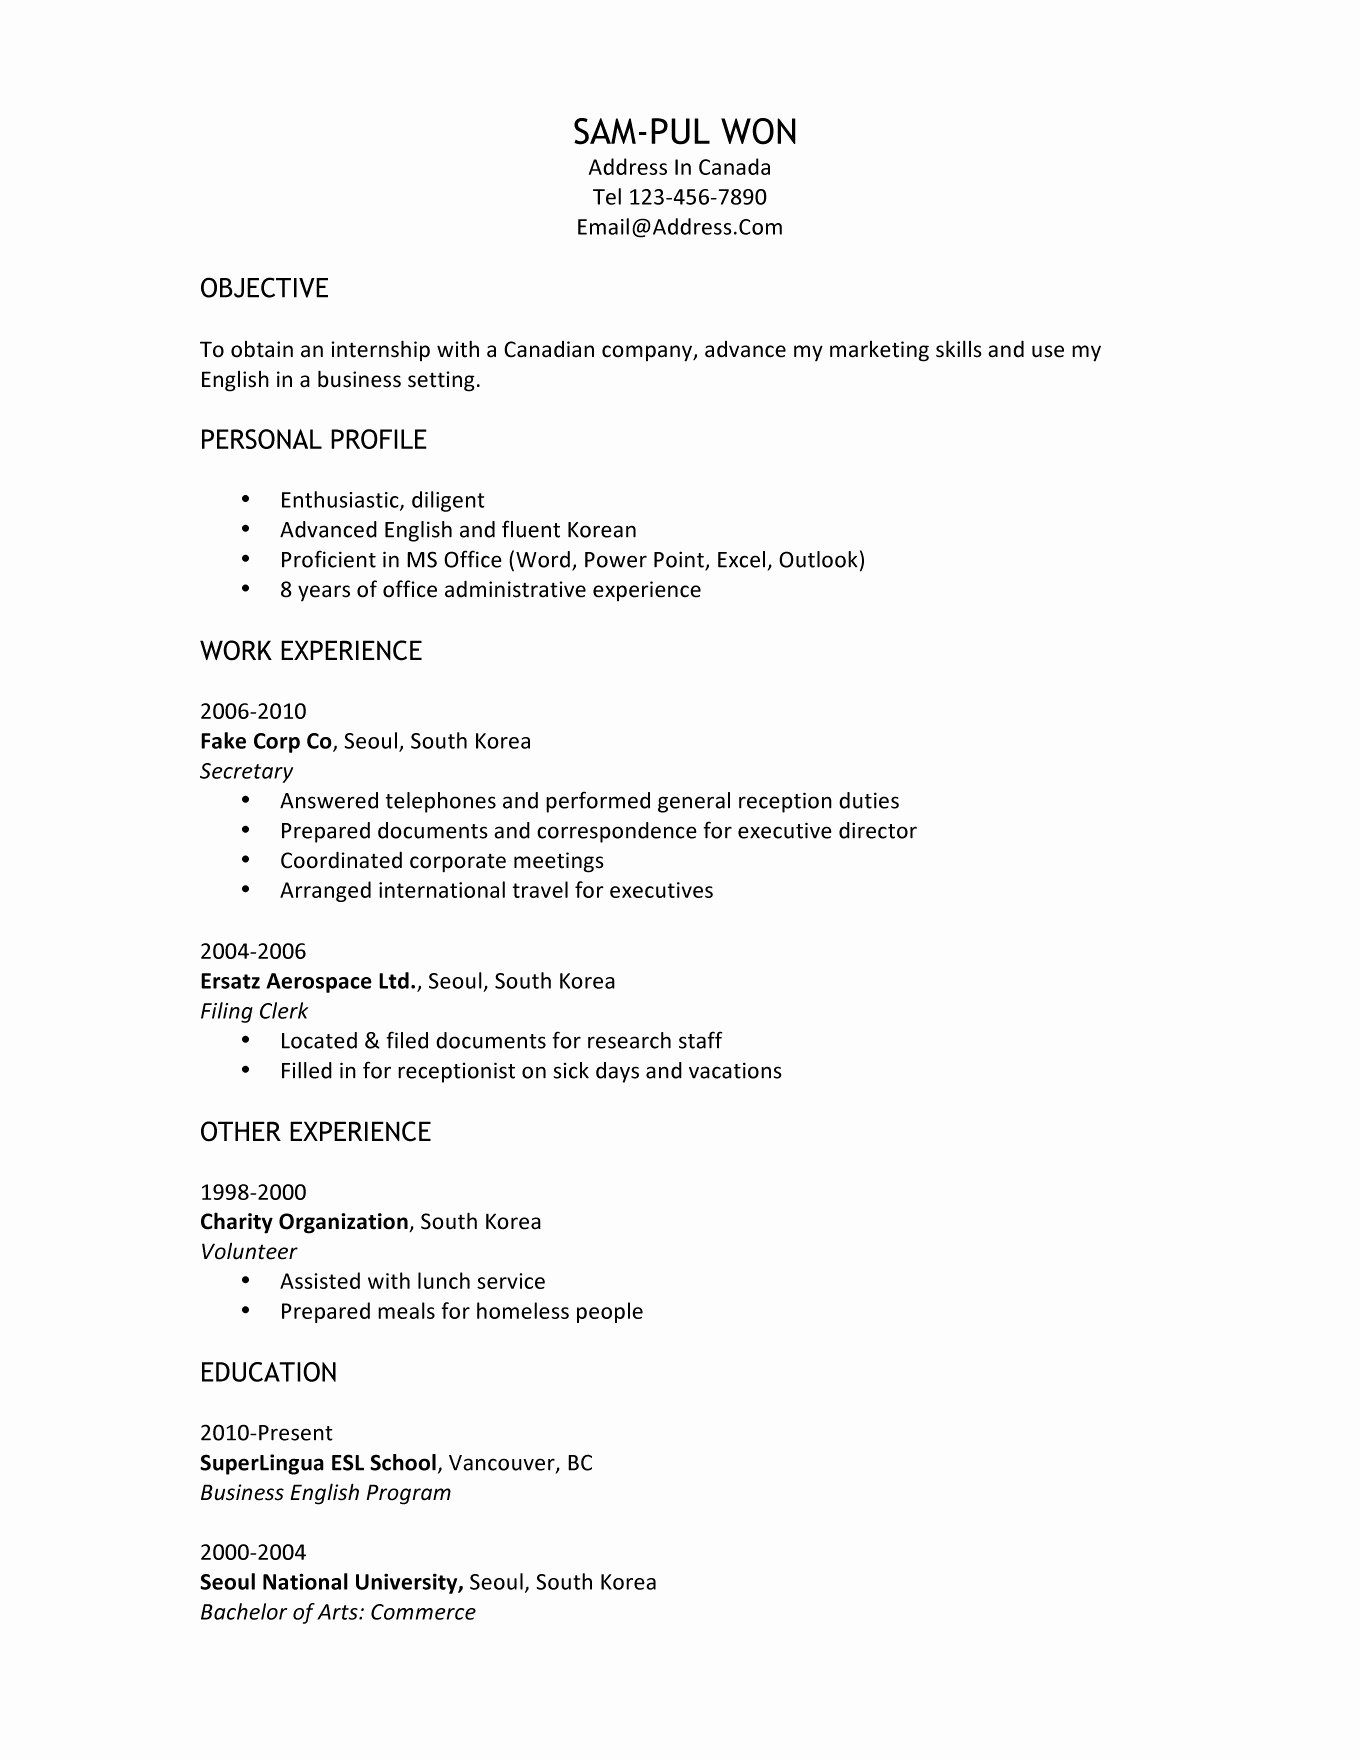 My First Job Experience Essay Fresh High School Resume Examples and Writing Tips